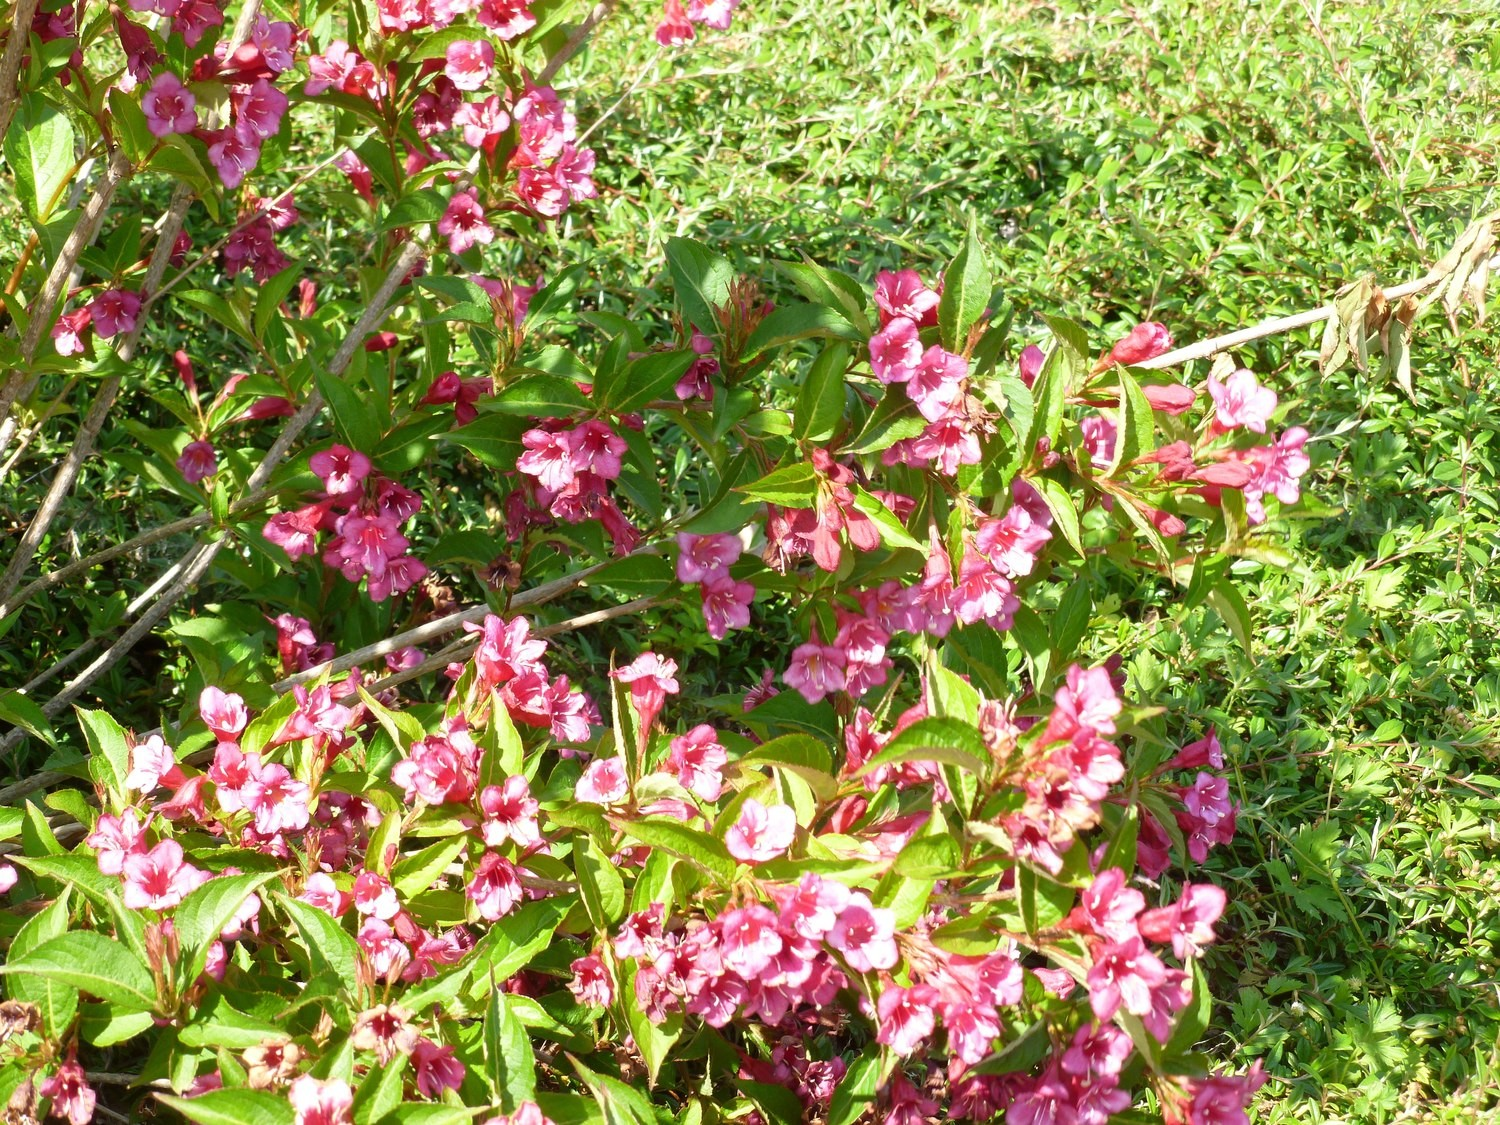 Weigela rose ou rouge intense